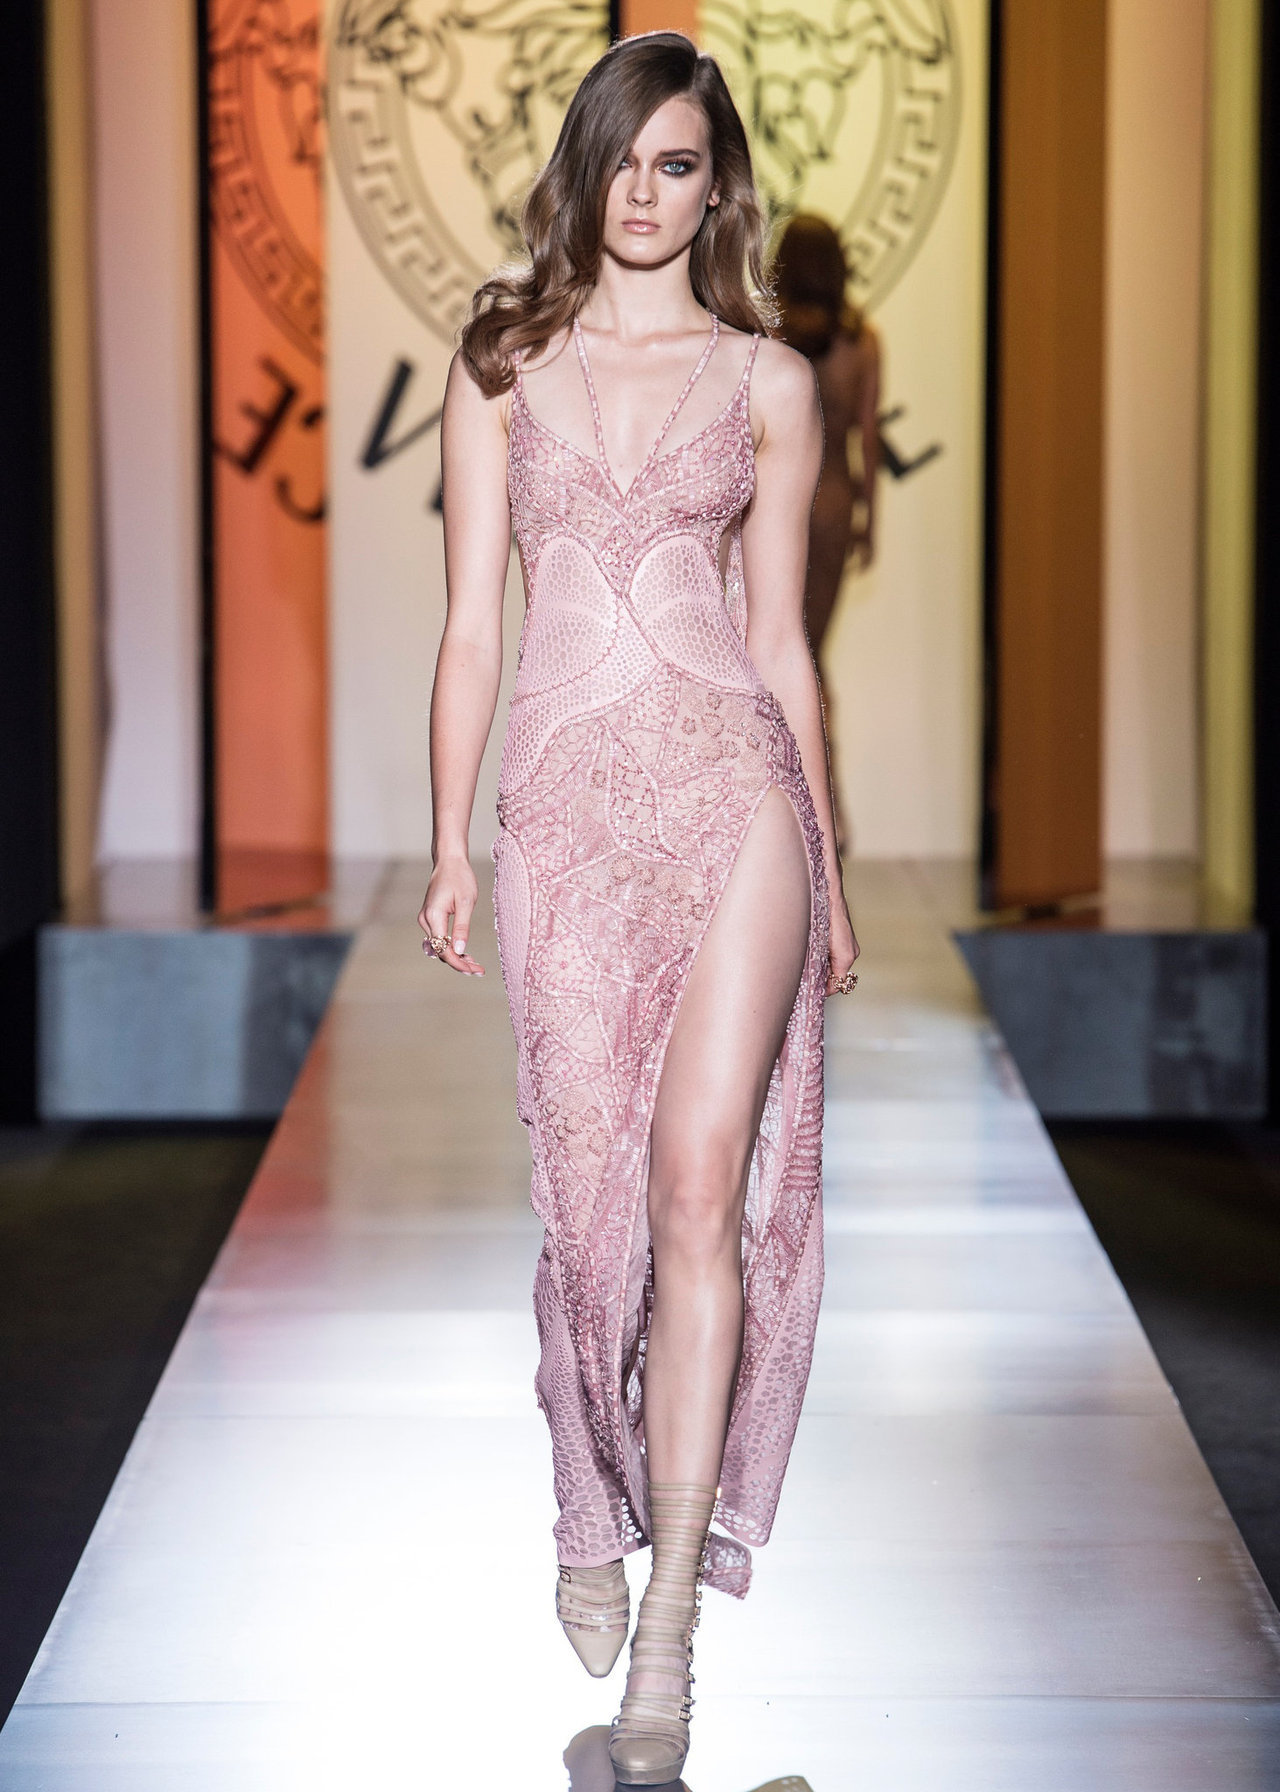 Our favorite look from Donatella Versace's first proper haute couture show in years is this showgirl-takes-the-red-carpet dress.